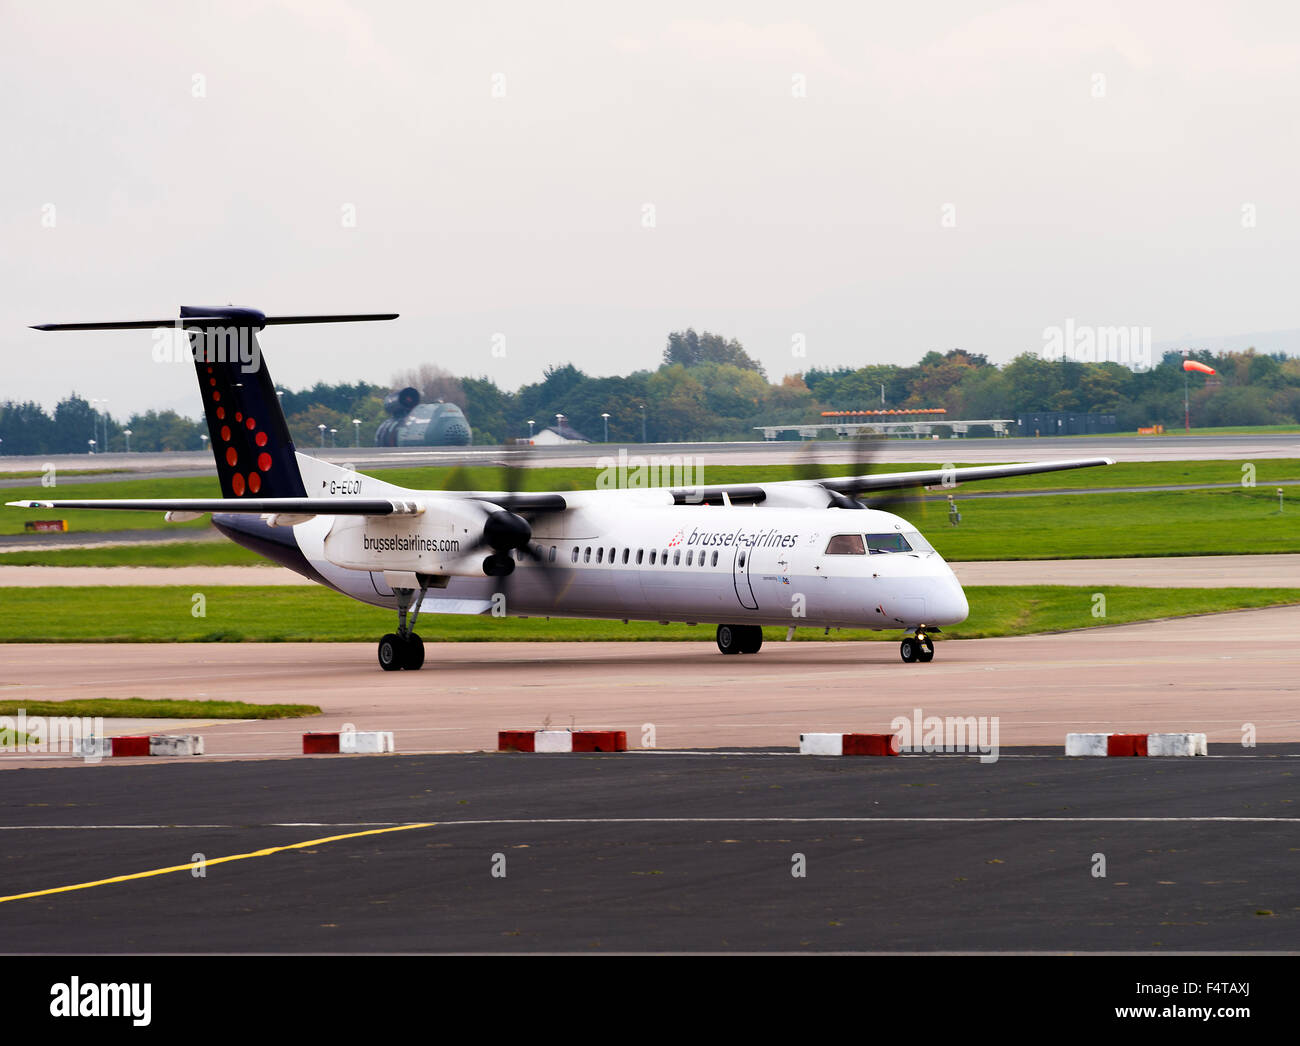 Brussels Airlines Bombardier Dash8-402Q Turboprop Airliner G-ECOI Taxiing at Manchester Airport England United Kingdom - Stock Image